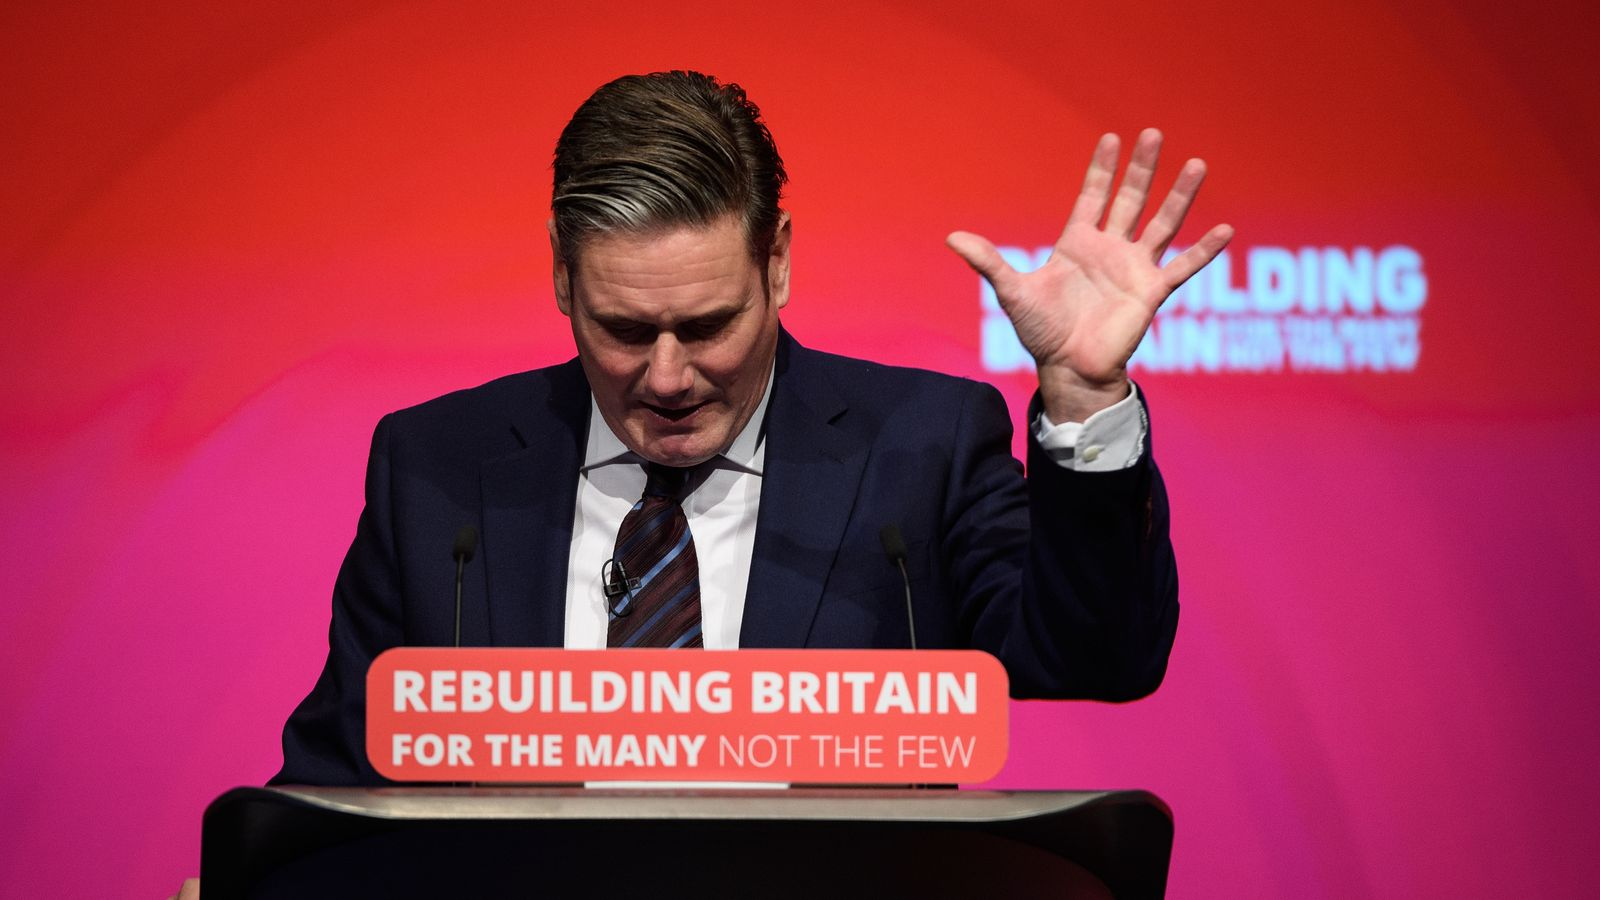 What are Labour playing at with ambiguous Brexit policy?